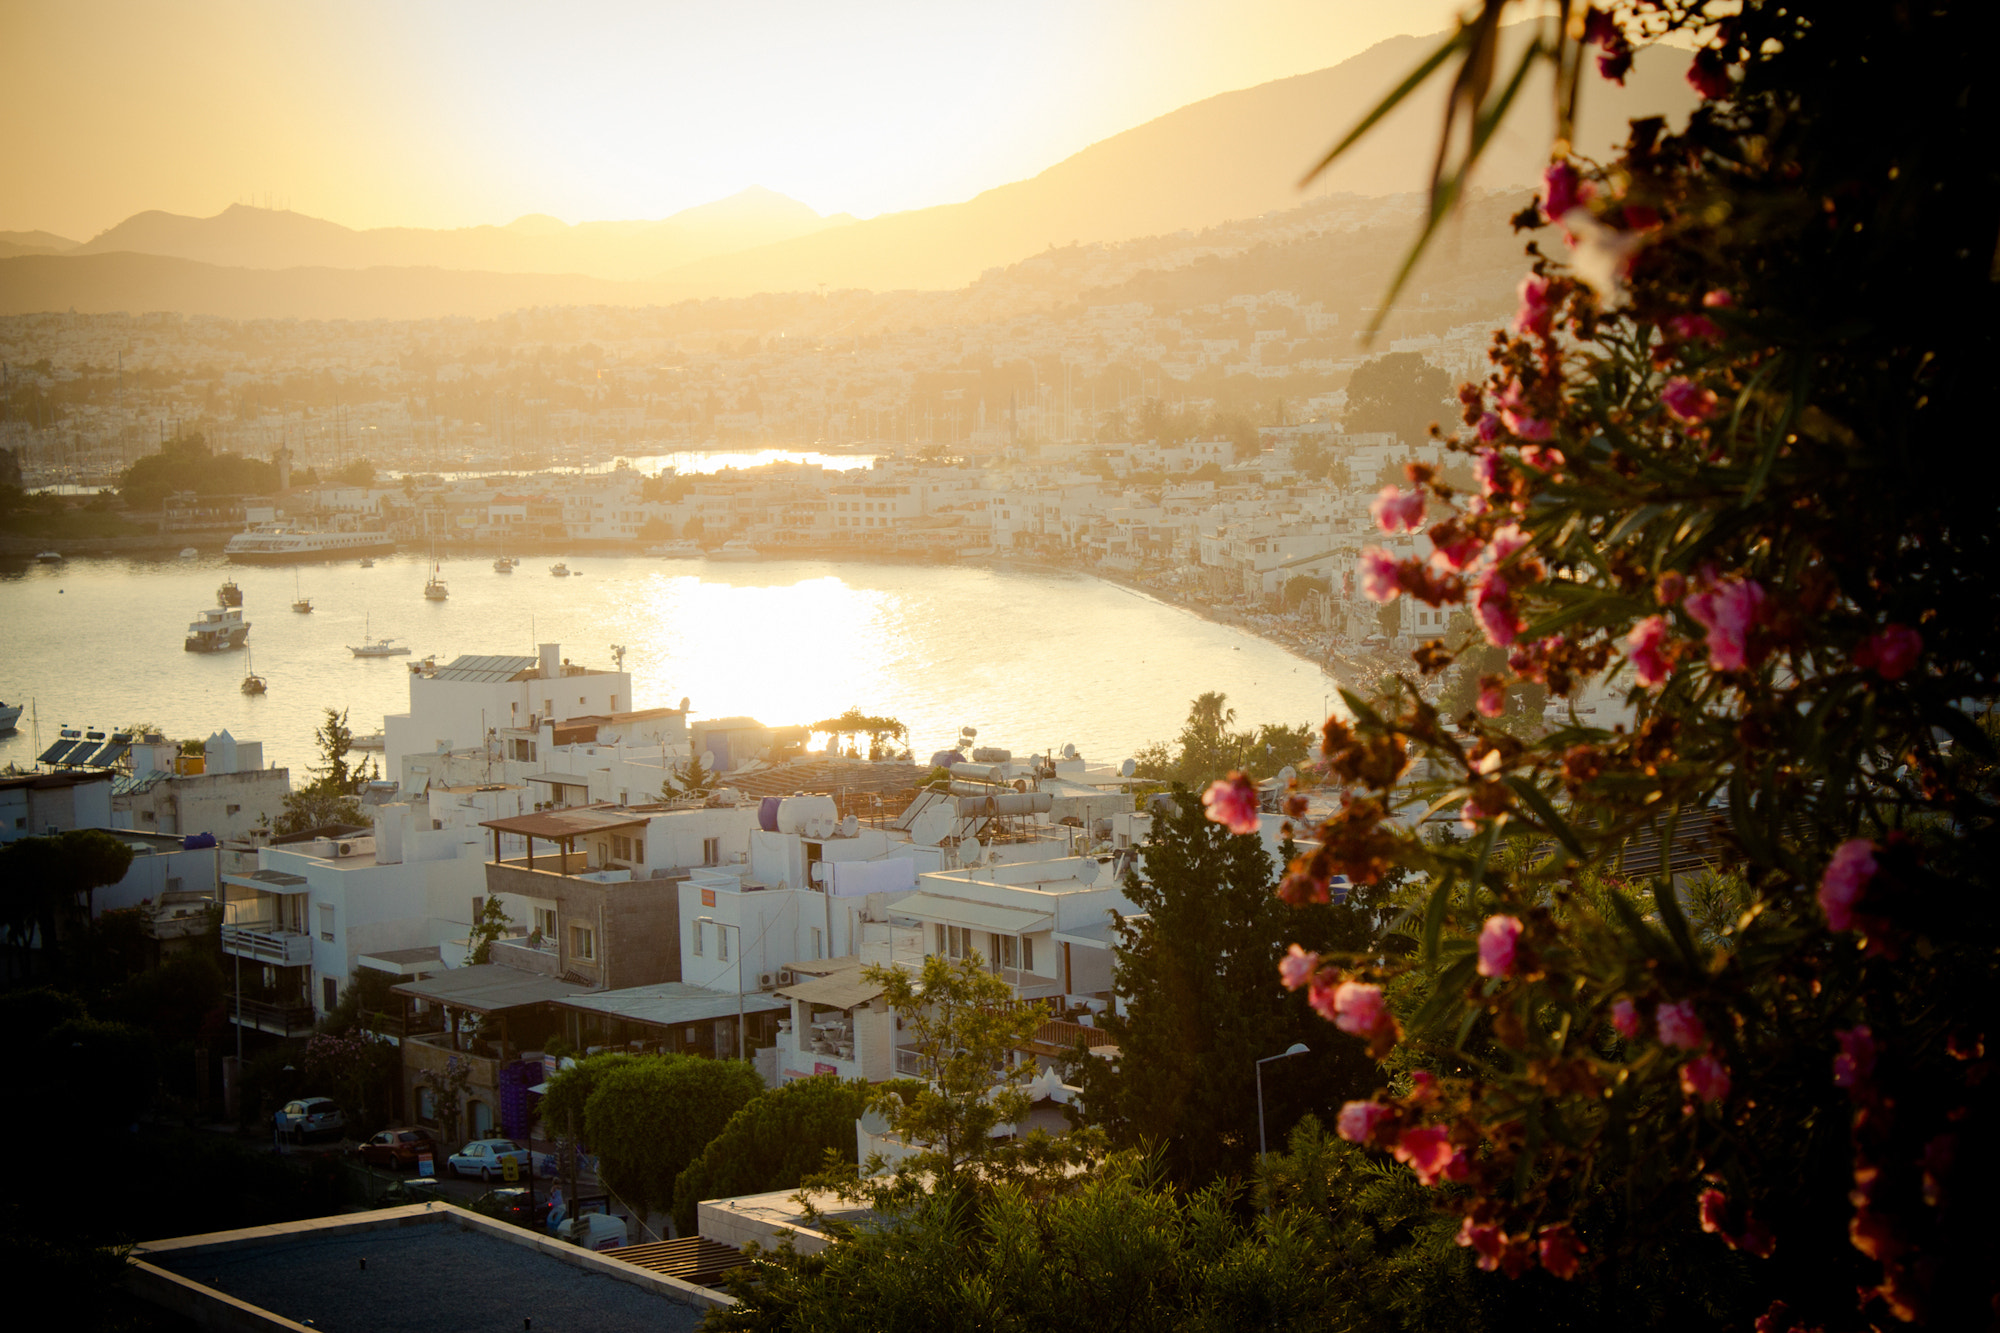 Photograph Sunset in Bodrum Pt. 2 by Melanie Geroche on 500px